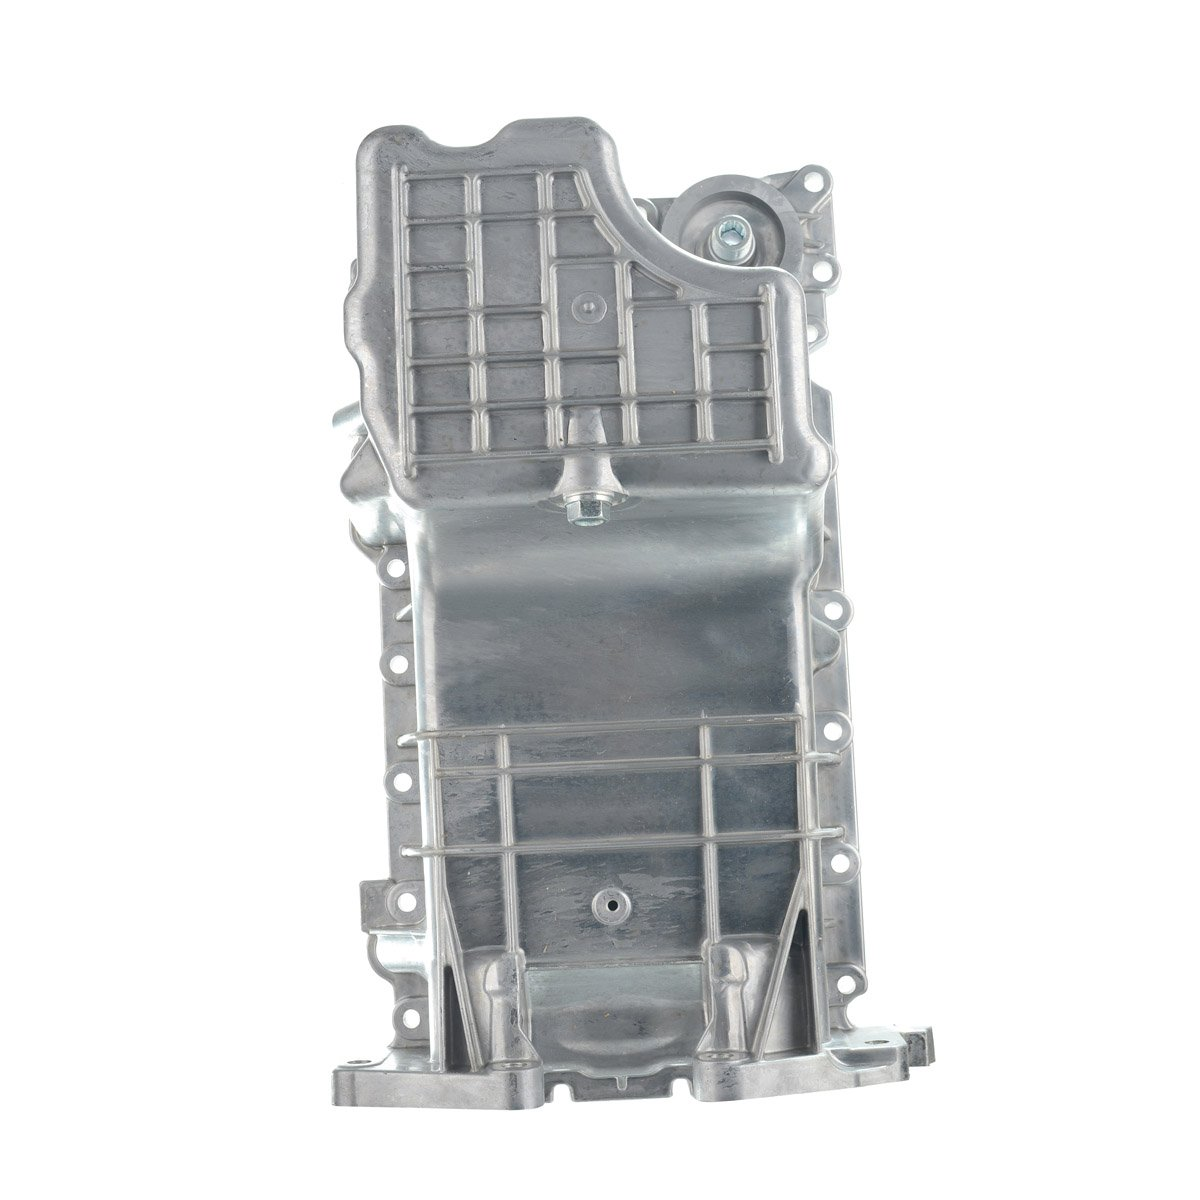 05-18 300 Schnecke Engine Oil Pan Fits select 5.7L 6.1L 6.4L CHRYSLER 5037634AC CRP49A 06-15 CHARGER replaces 4792870AB 09-18 CHALLENGER 05-08 MAGNUM 15-18 CHARGER 15-18 CHALLENGER DODGE